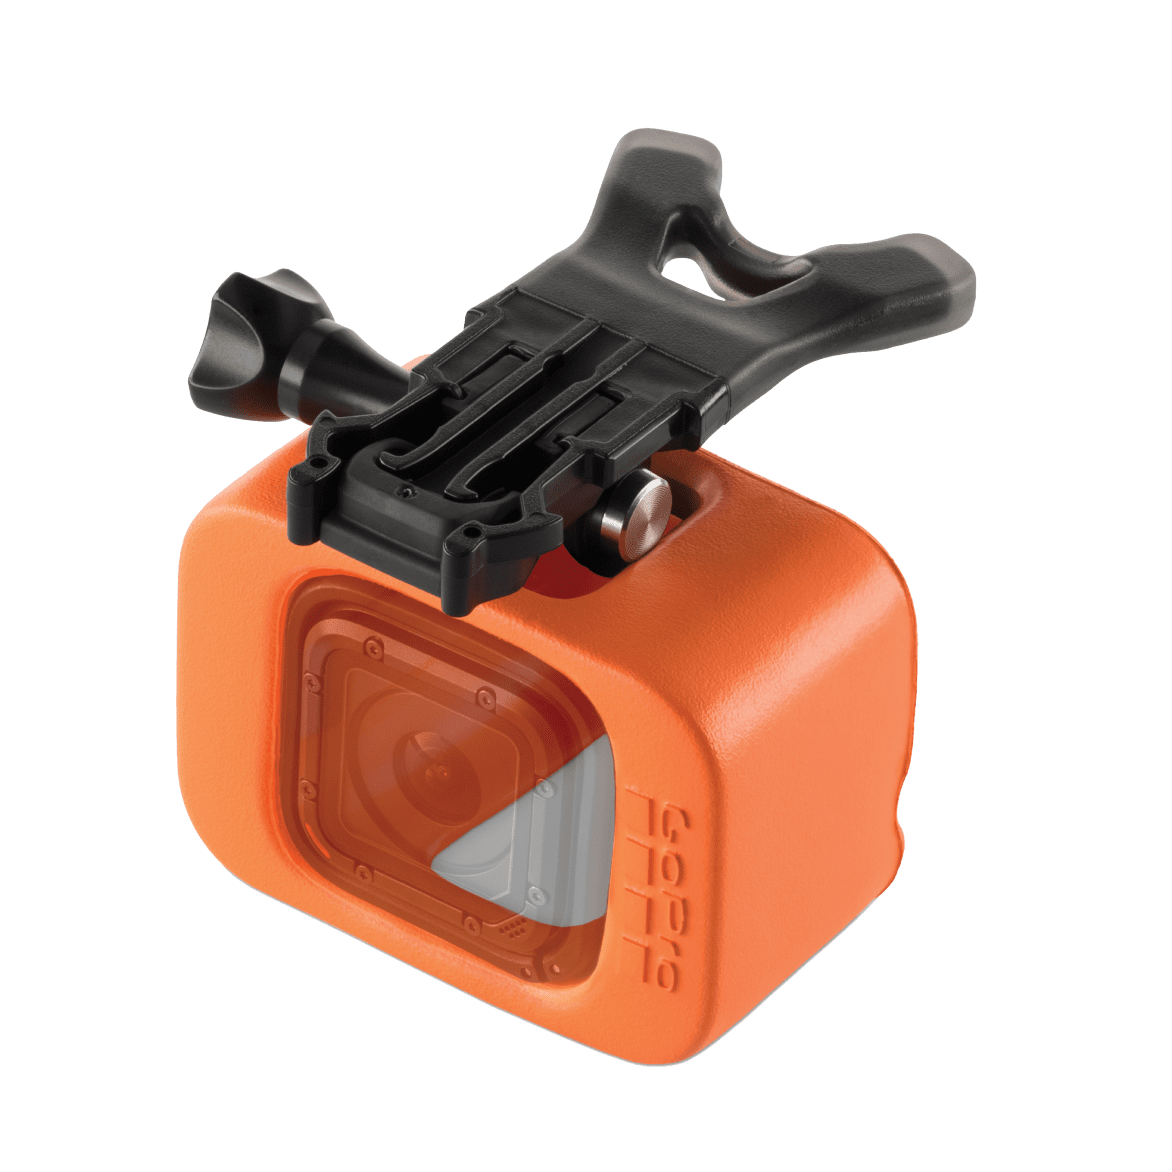 Bite Mount + Floaty for Session-front-image